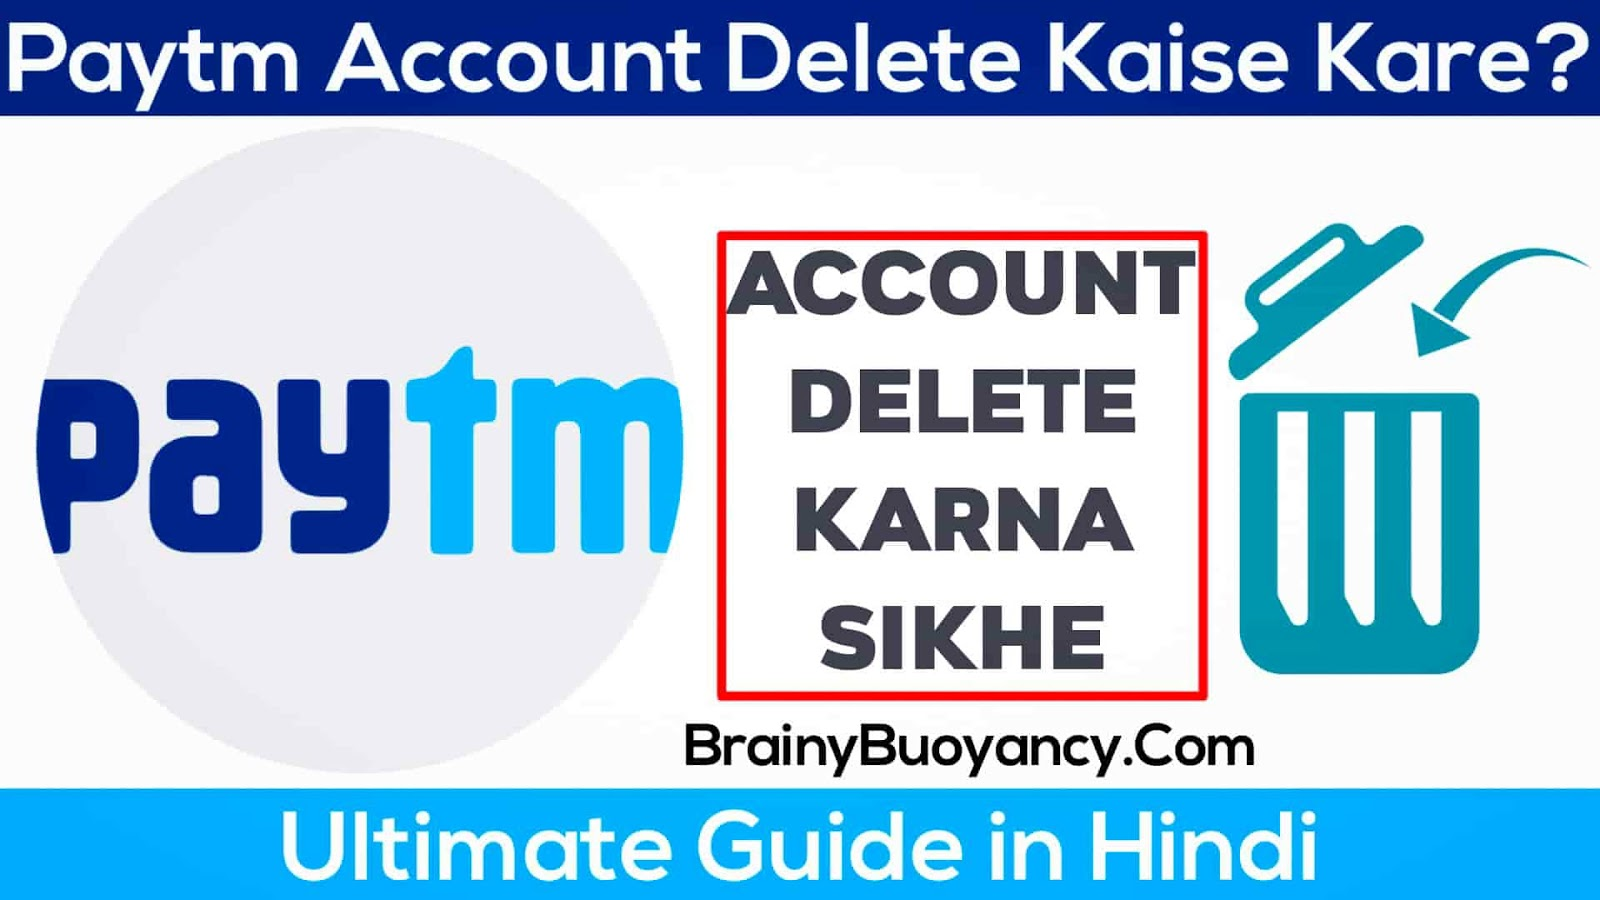 Paytm Account Delete Kaise Kare? Ultimate Guide in Hindi